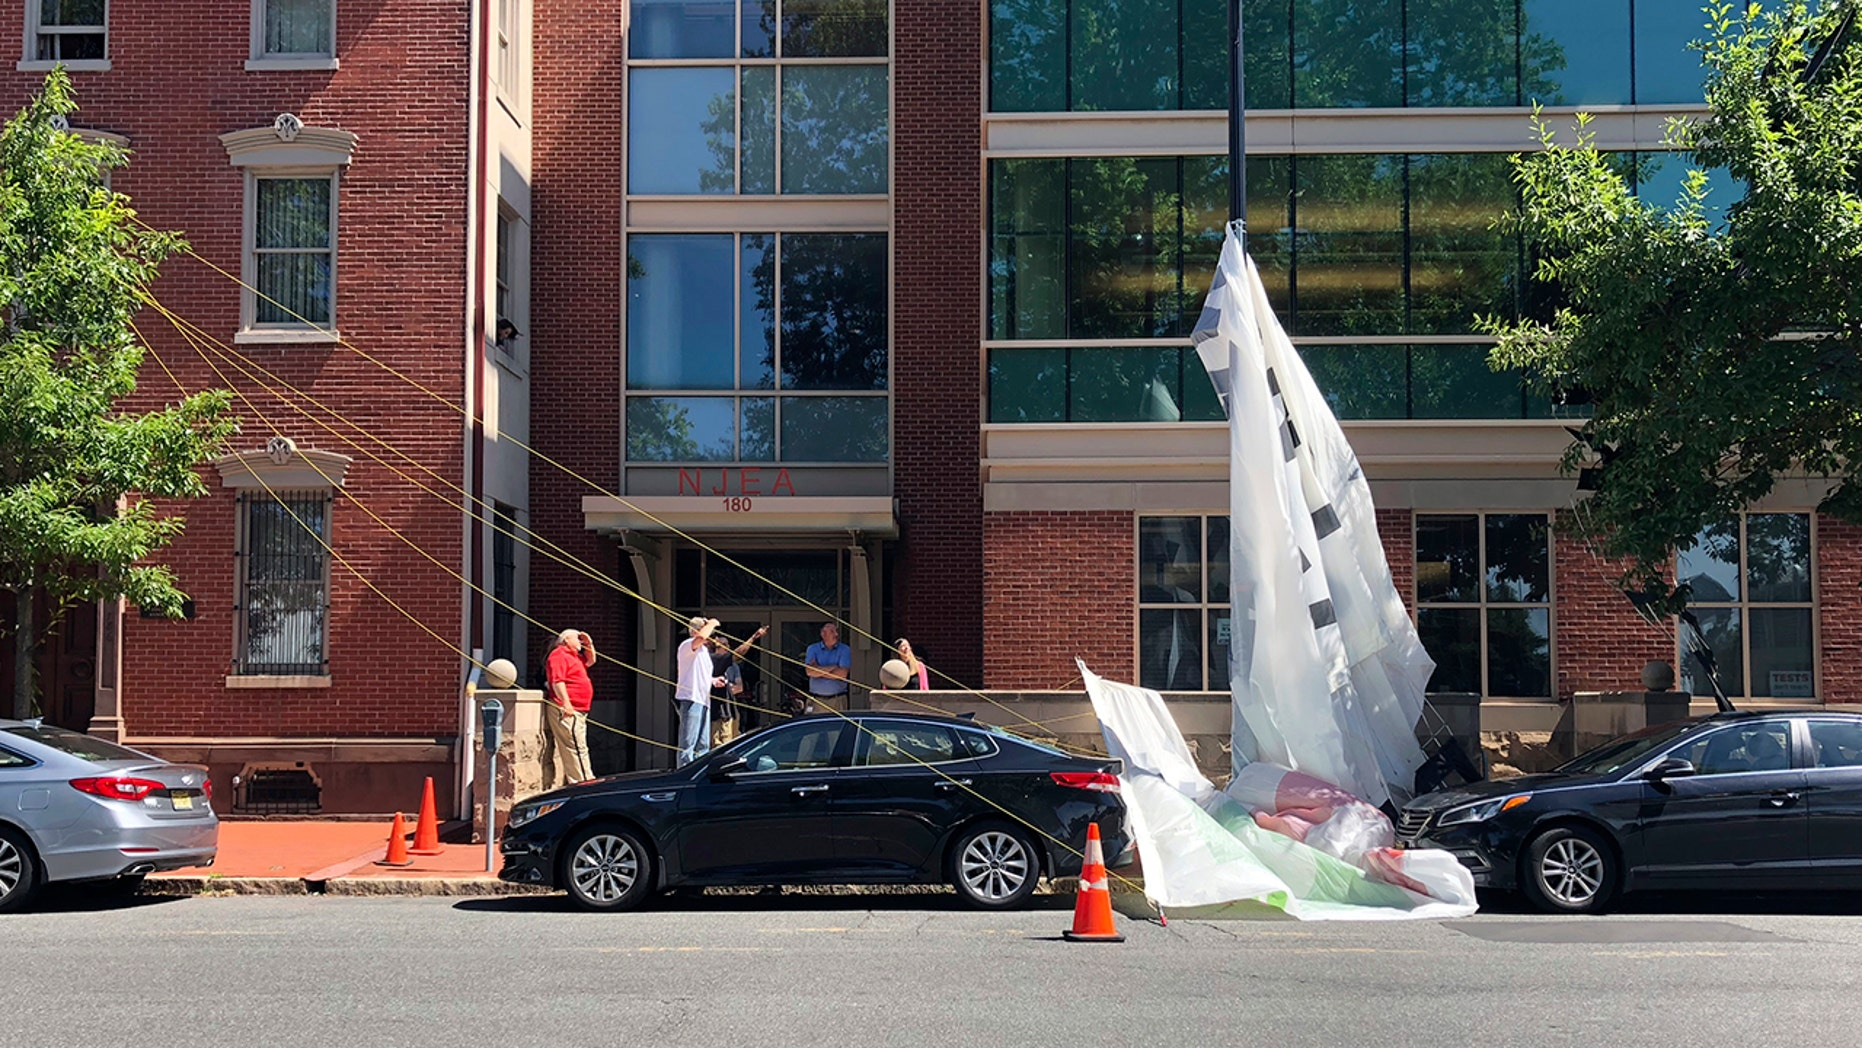 Banner Comes Loose From Plane Over New Jersey Town Smashes Car